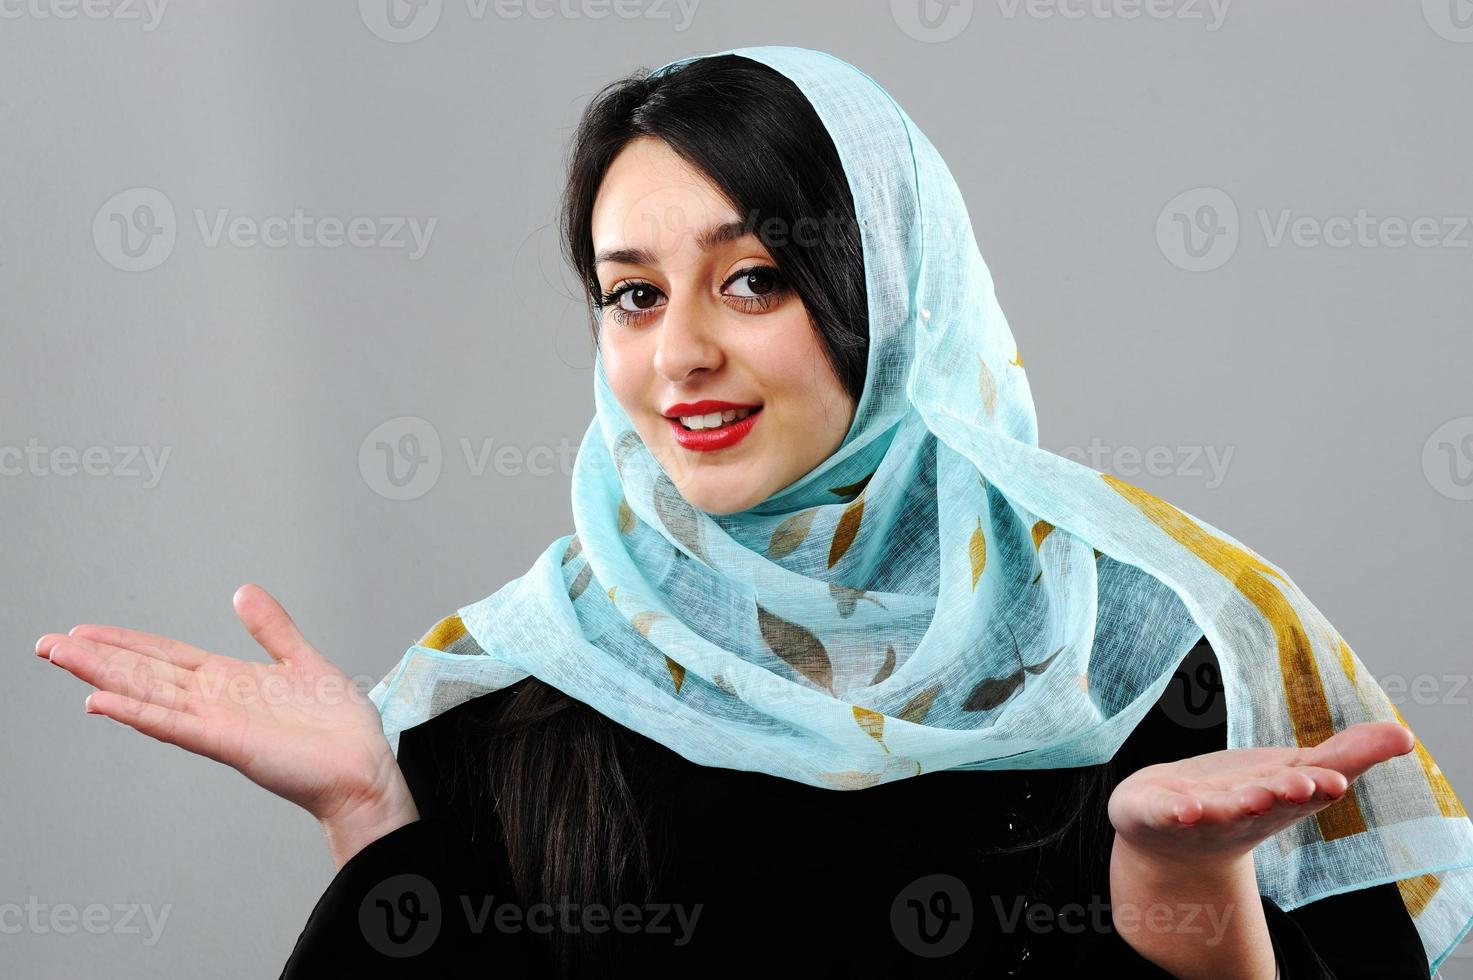 Middle eastern woman portrait photo